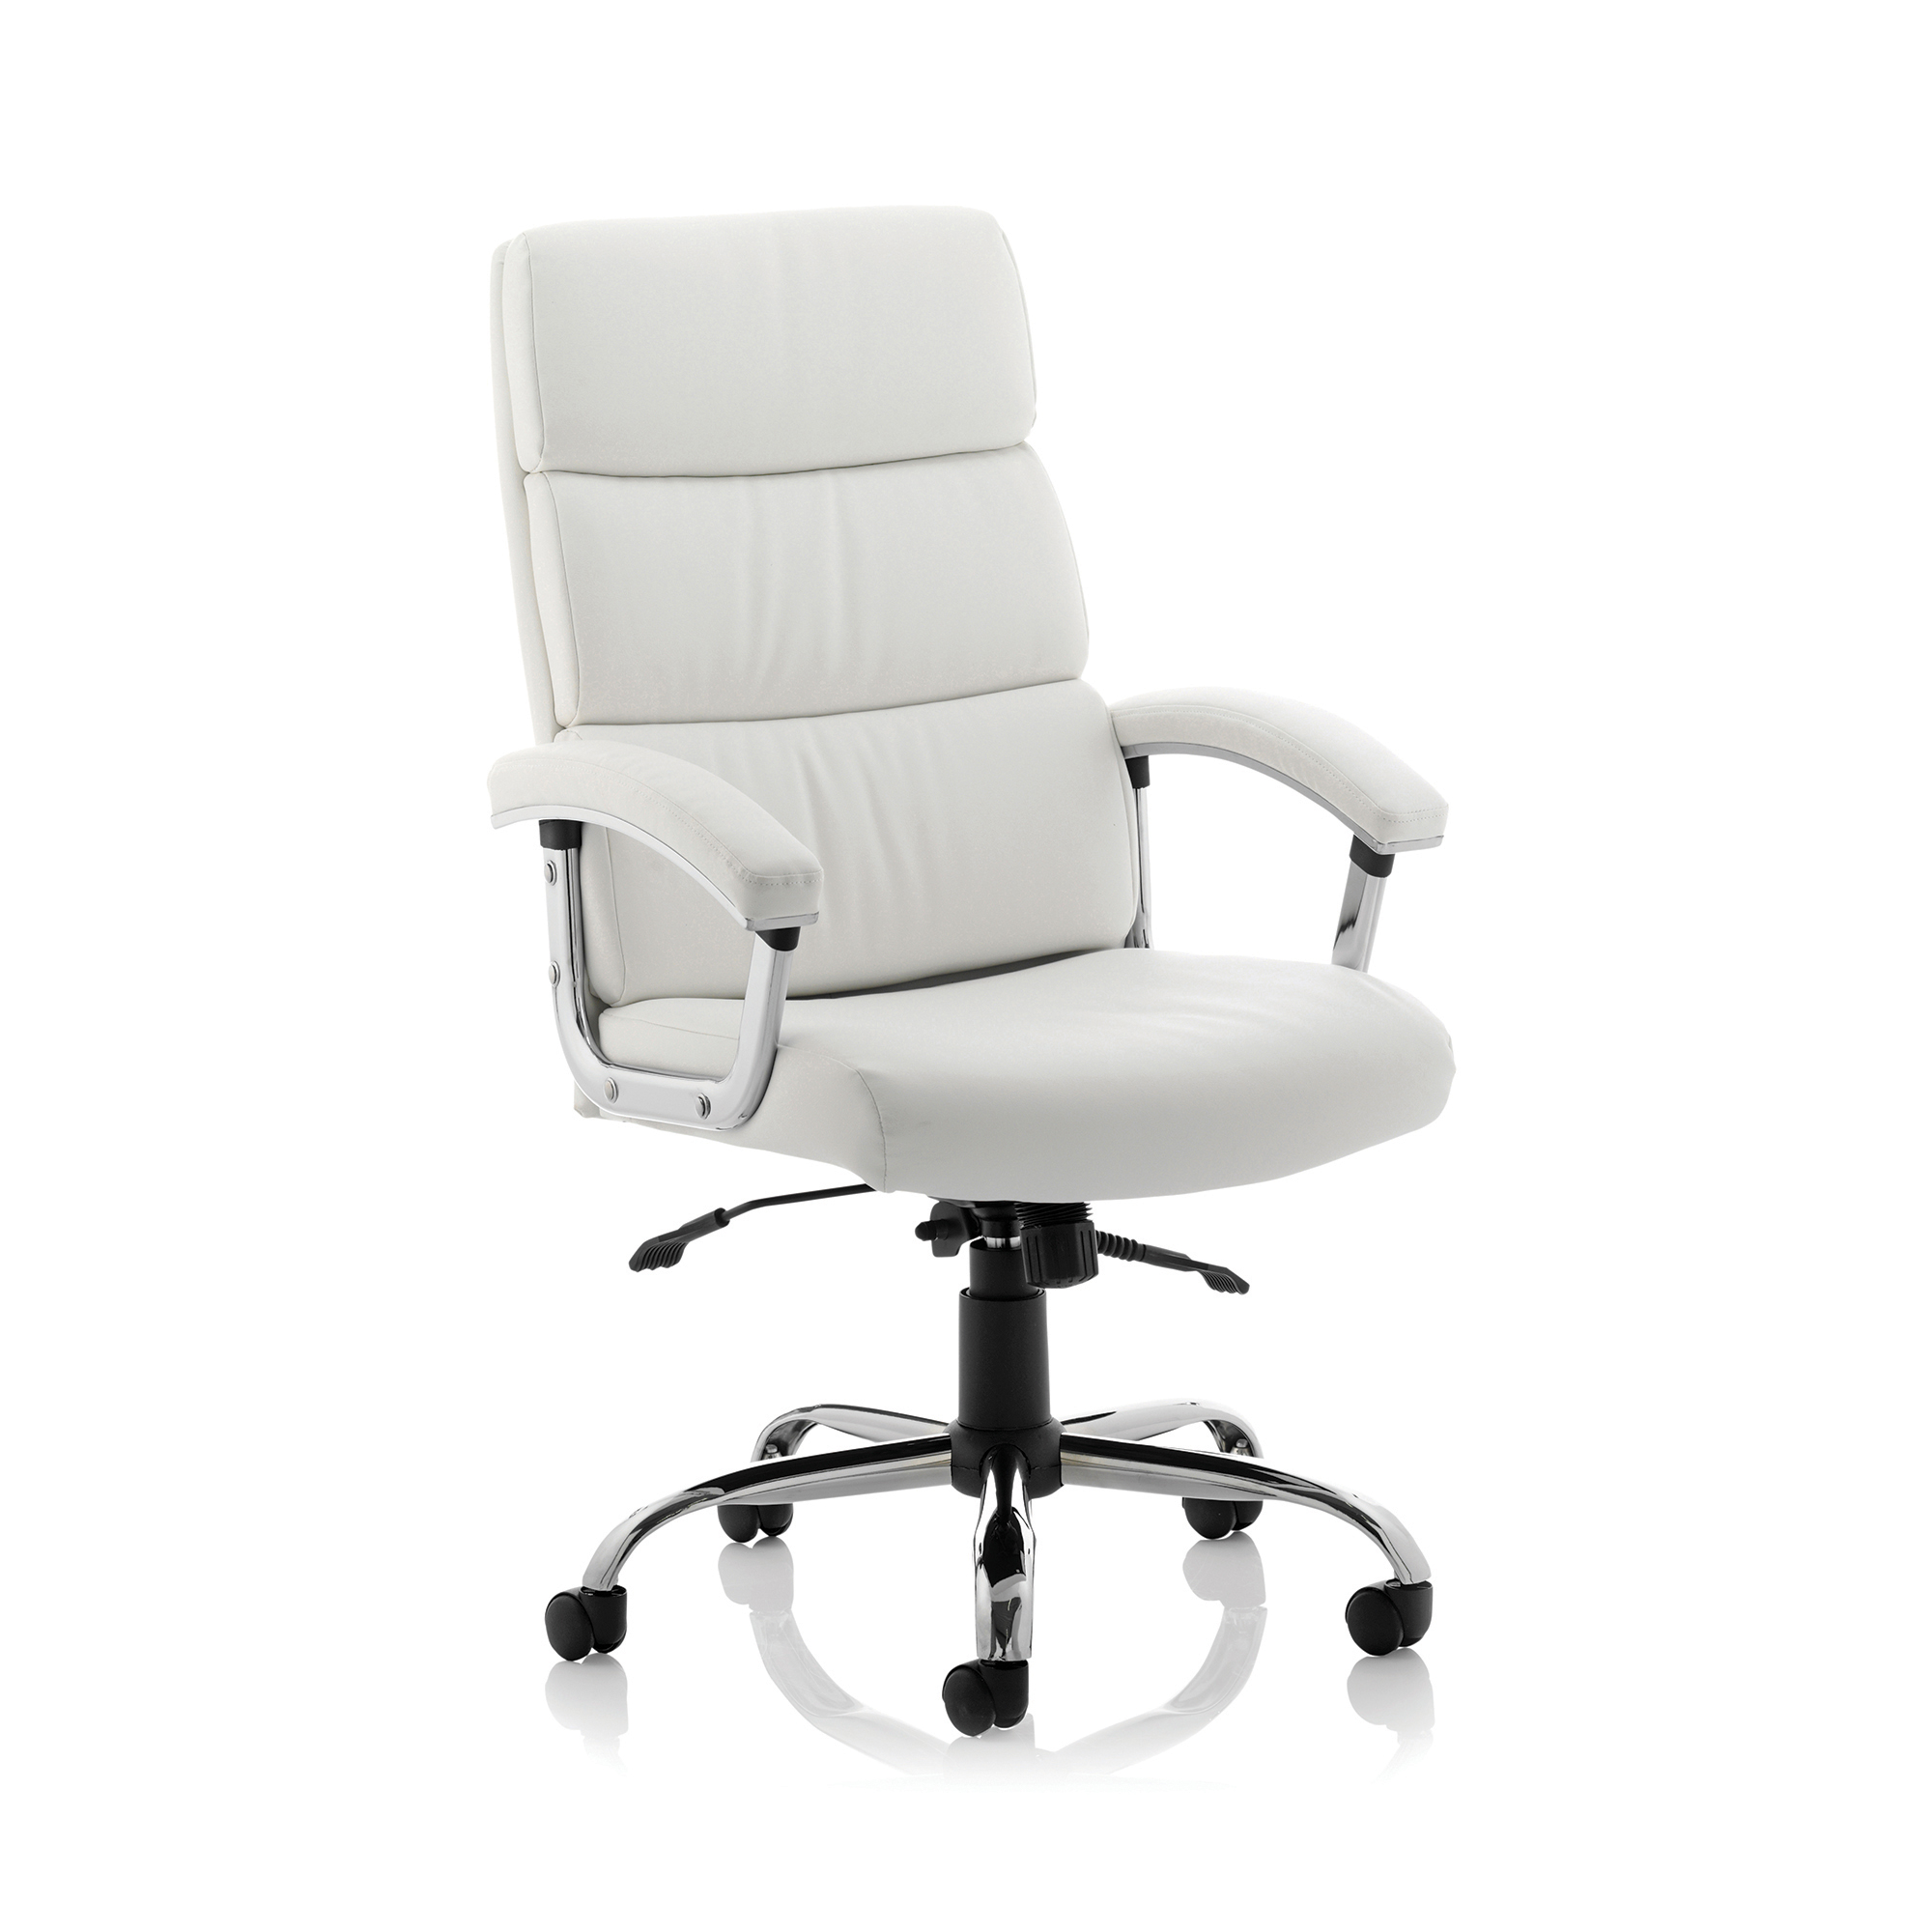 Executive seating Sonix Desire High Executive Chair With Arms White Ref EX000020